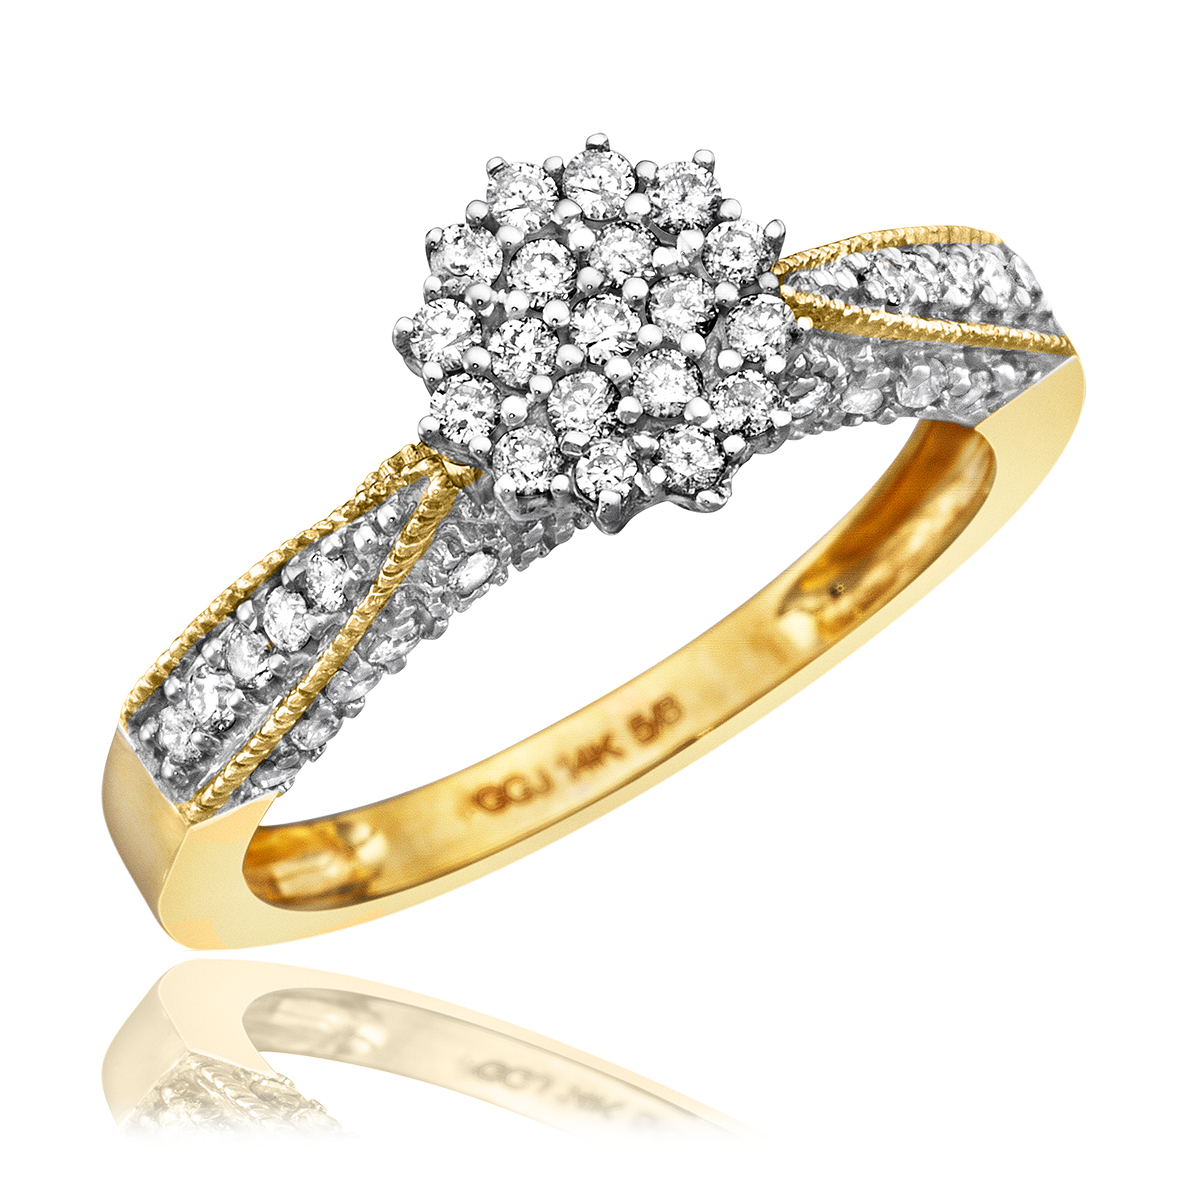 Yellow Diamond Wedding Ring Carat Diamond Trio Wedding Ring Set 14K Yellow Gold My Trio Rings